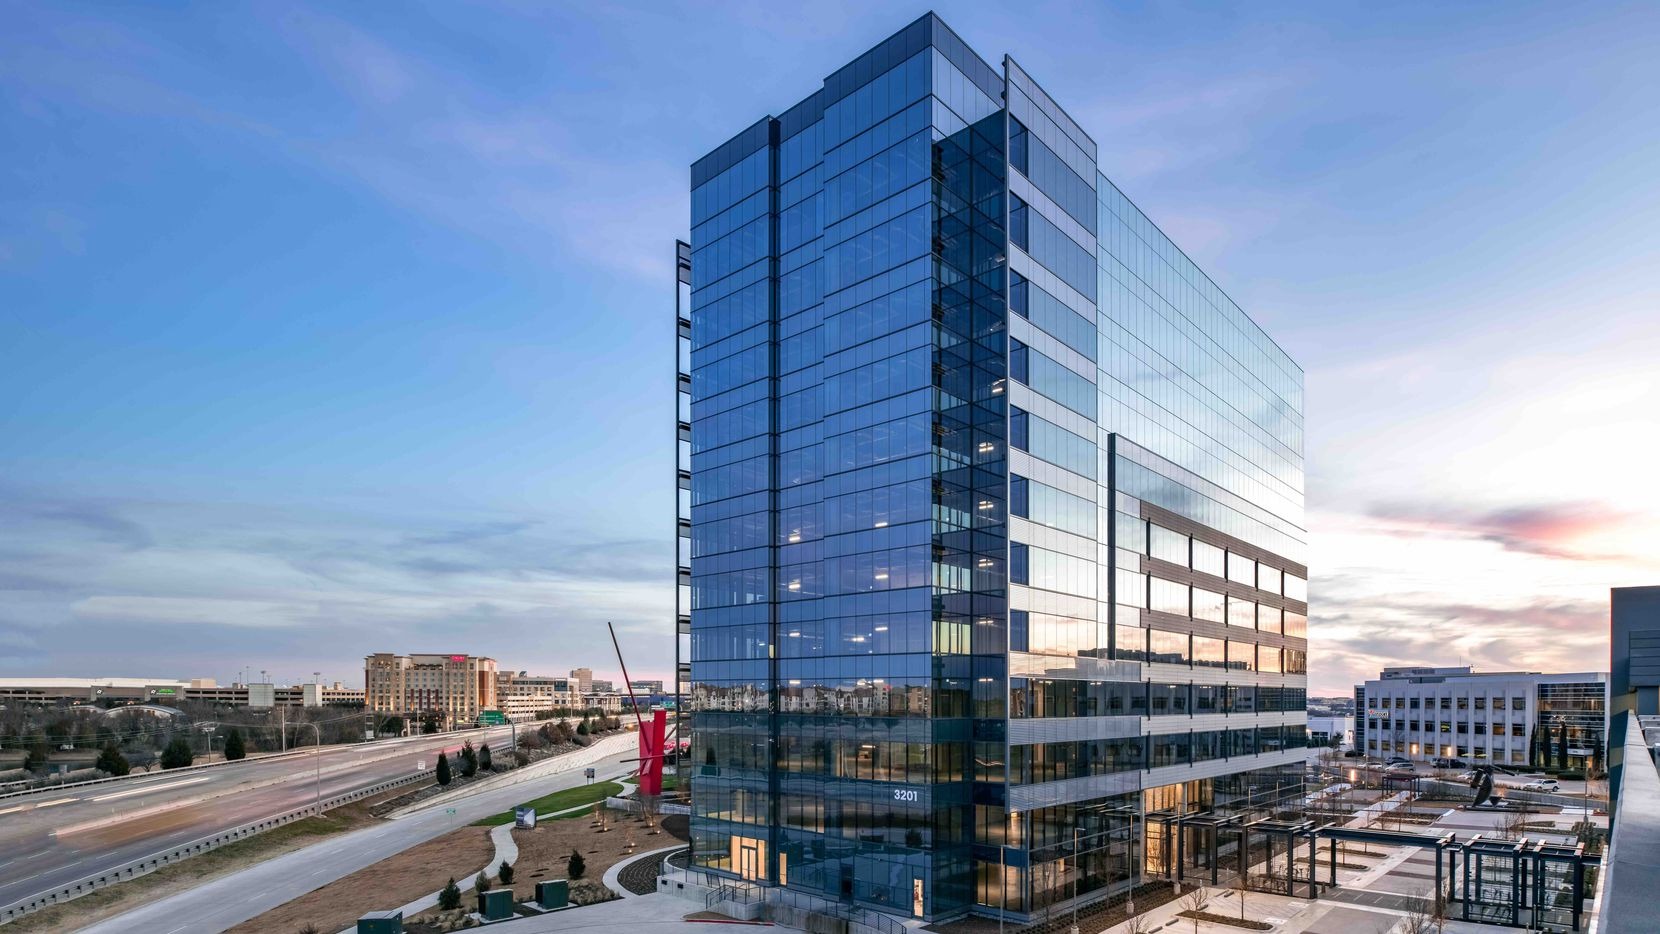 The 3201 Dallas Parkway tower is the latest addition to Frisco's Hall Park.